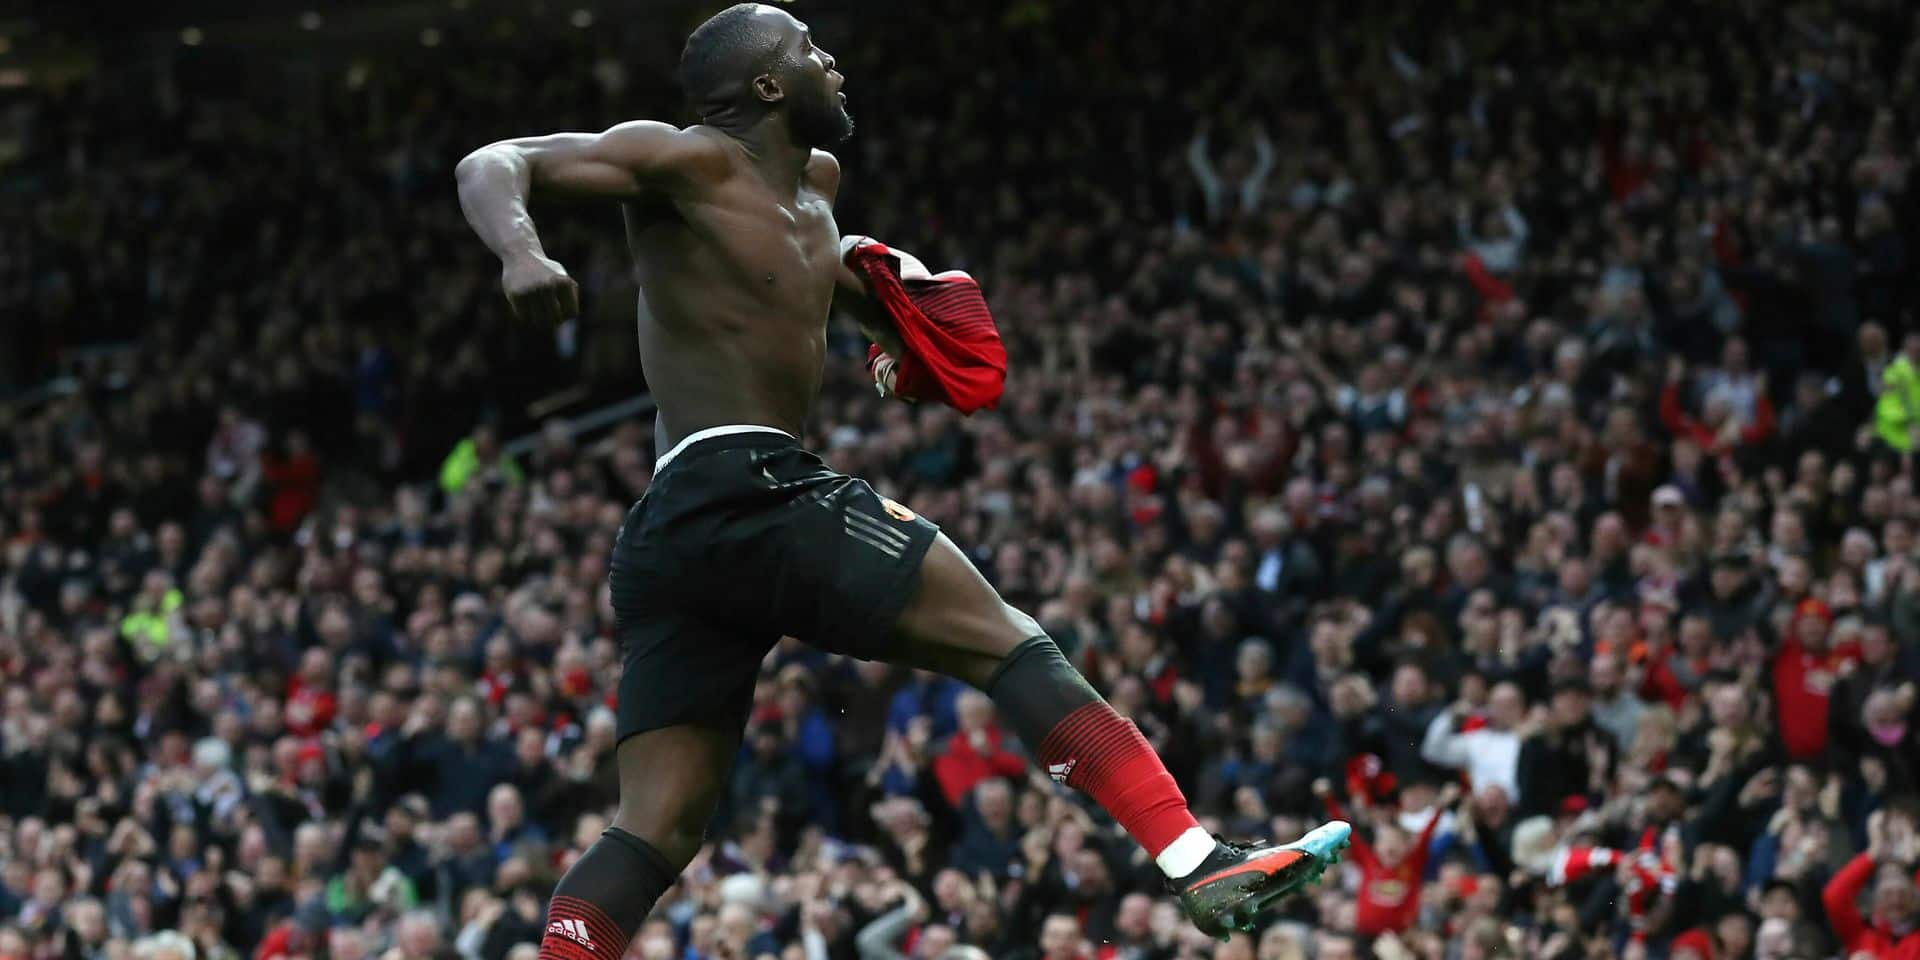 Manchester United's Romelu Lukaku celebrates scoring his side's third goal of the game, during the English Premier League soccer match between Manchester United and Southampton at Old Trafford, in Manchester, England, Saturday, March 2, 2019. (Martin Rickett/PA via AP)